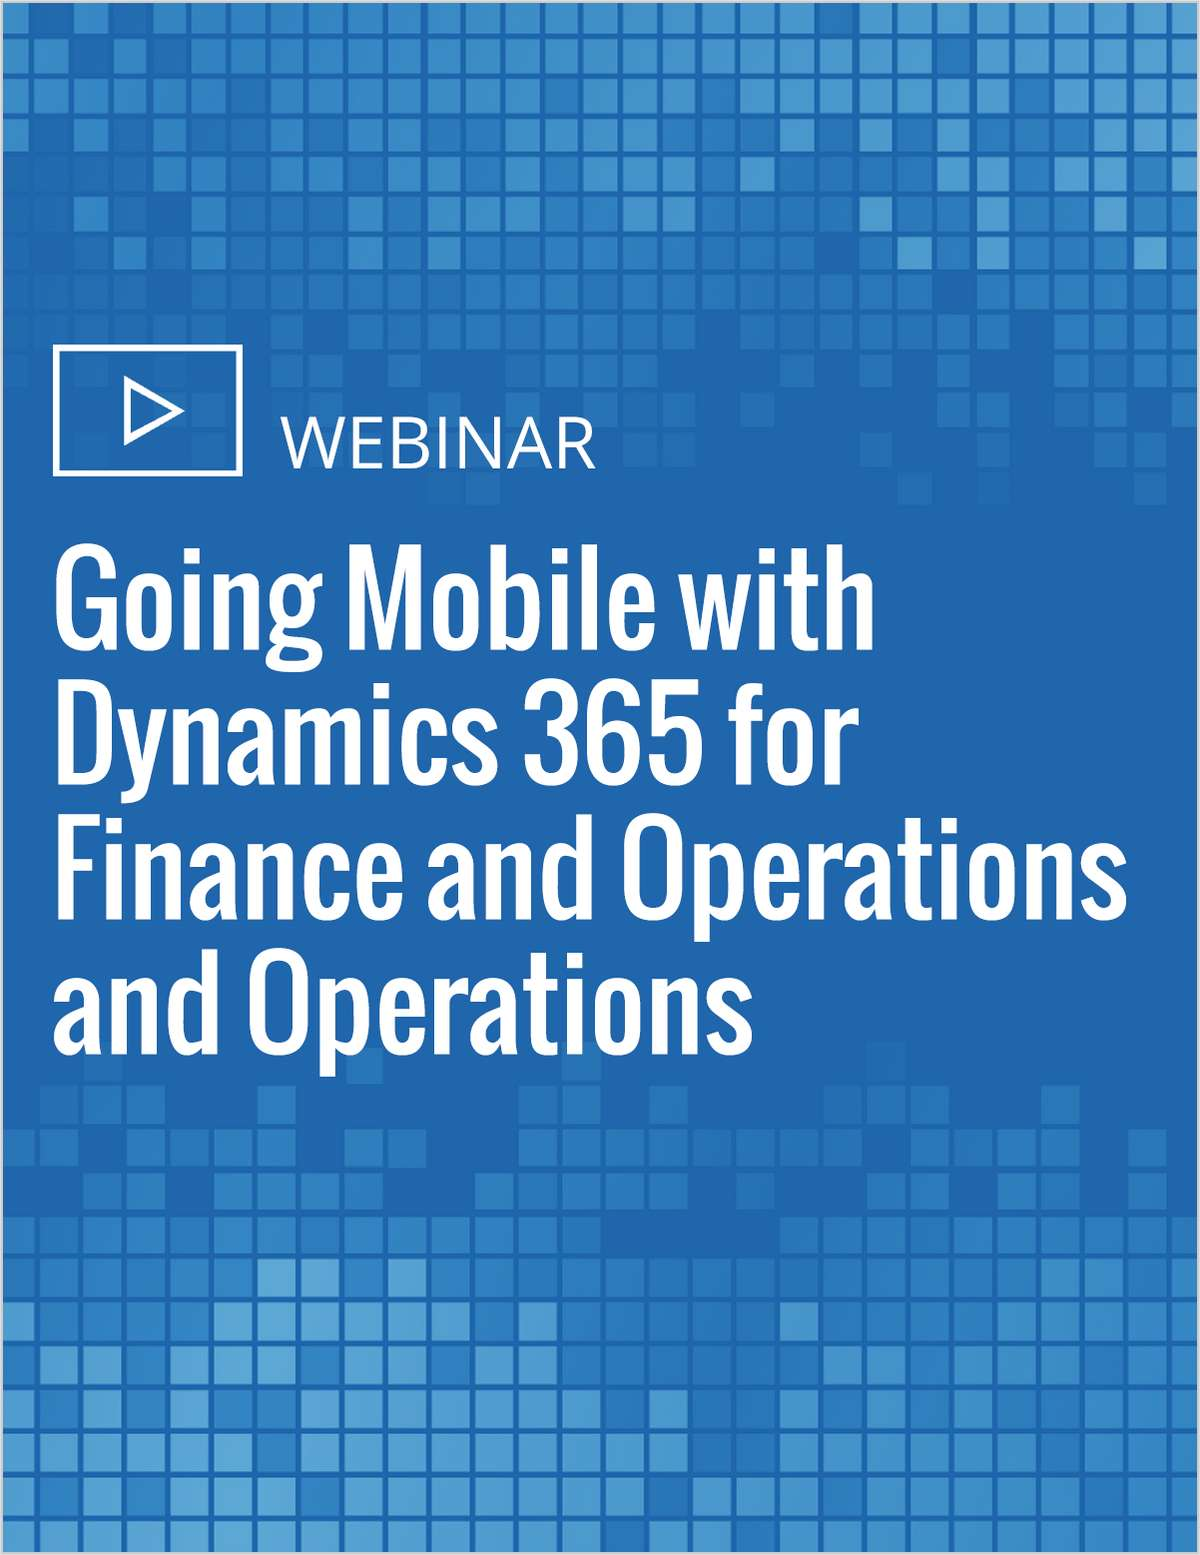 Going Mobile with Dynamics 365 for Finance and Operations